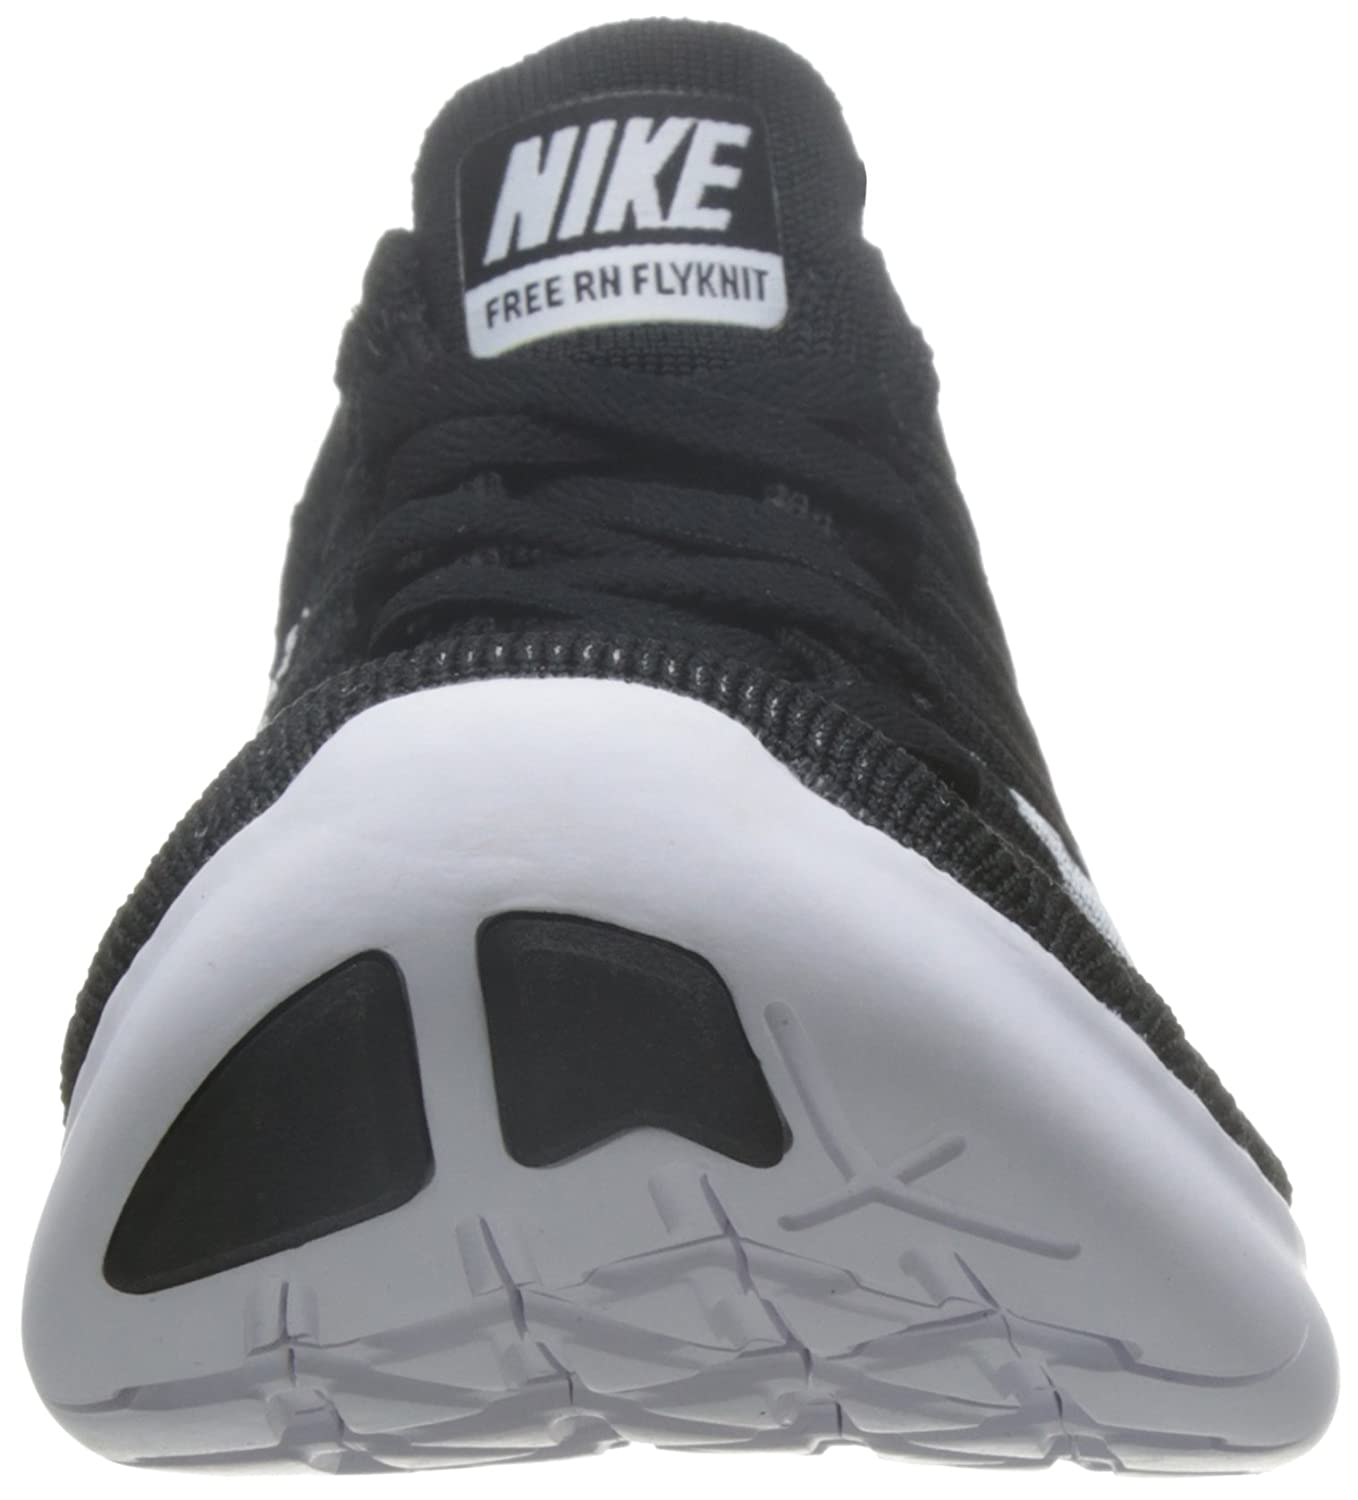 separation shoes 4a0a7 dc251 Amazon.com  Nike Free RN Flyknit Womens Black White Running Sneakers   Sports   Outdoors